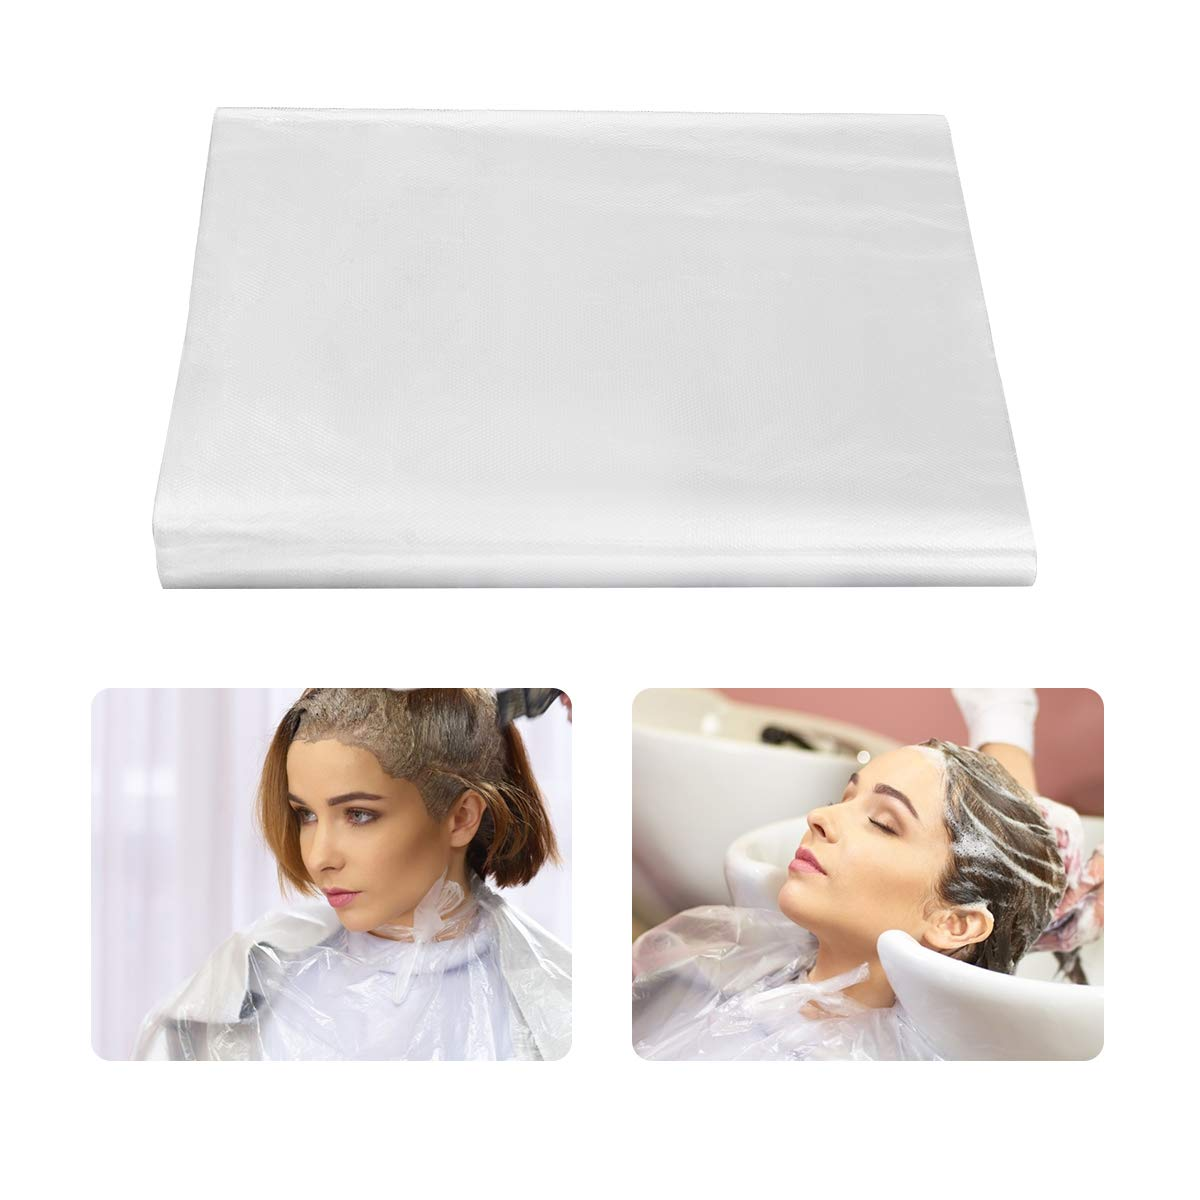 Madholly 50pcs Disposable Haircut Apron- 51 x 63 inch Hair Cutting Capes Waterproof Barber Hairdressing Cape Lightweight Hair Salon Capes for Shampoo Styling Hair Coloring for Home and Salon